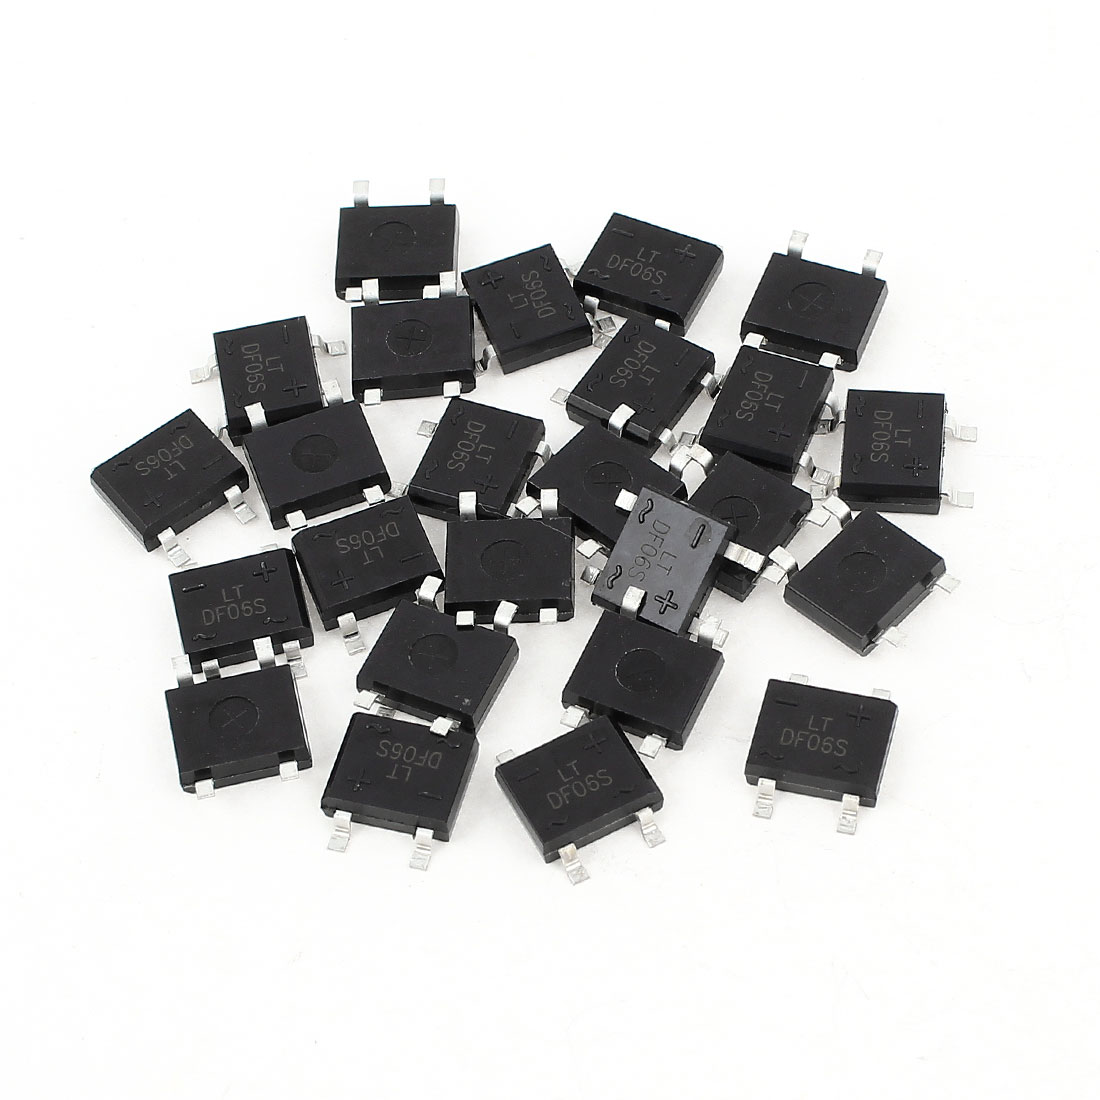 25Pcs DF06S Surface Mounting SMD General Purpose Bridge Power Rectifier IC